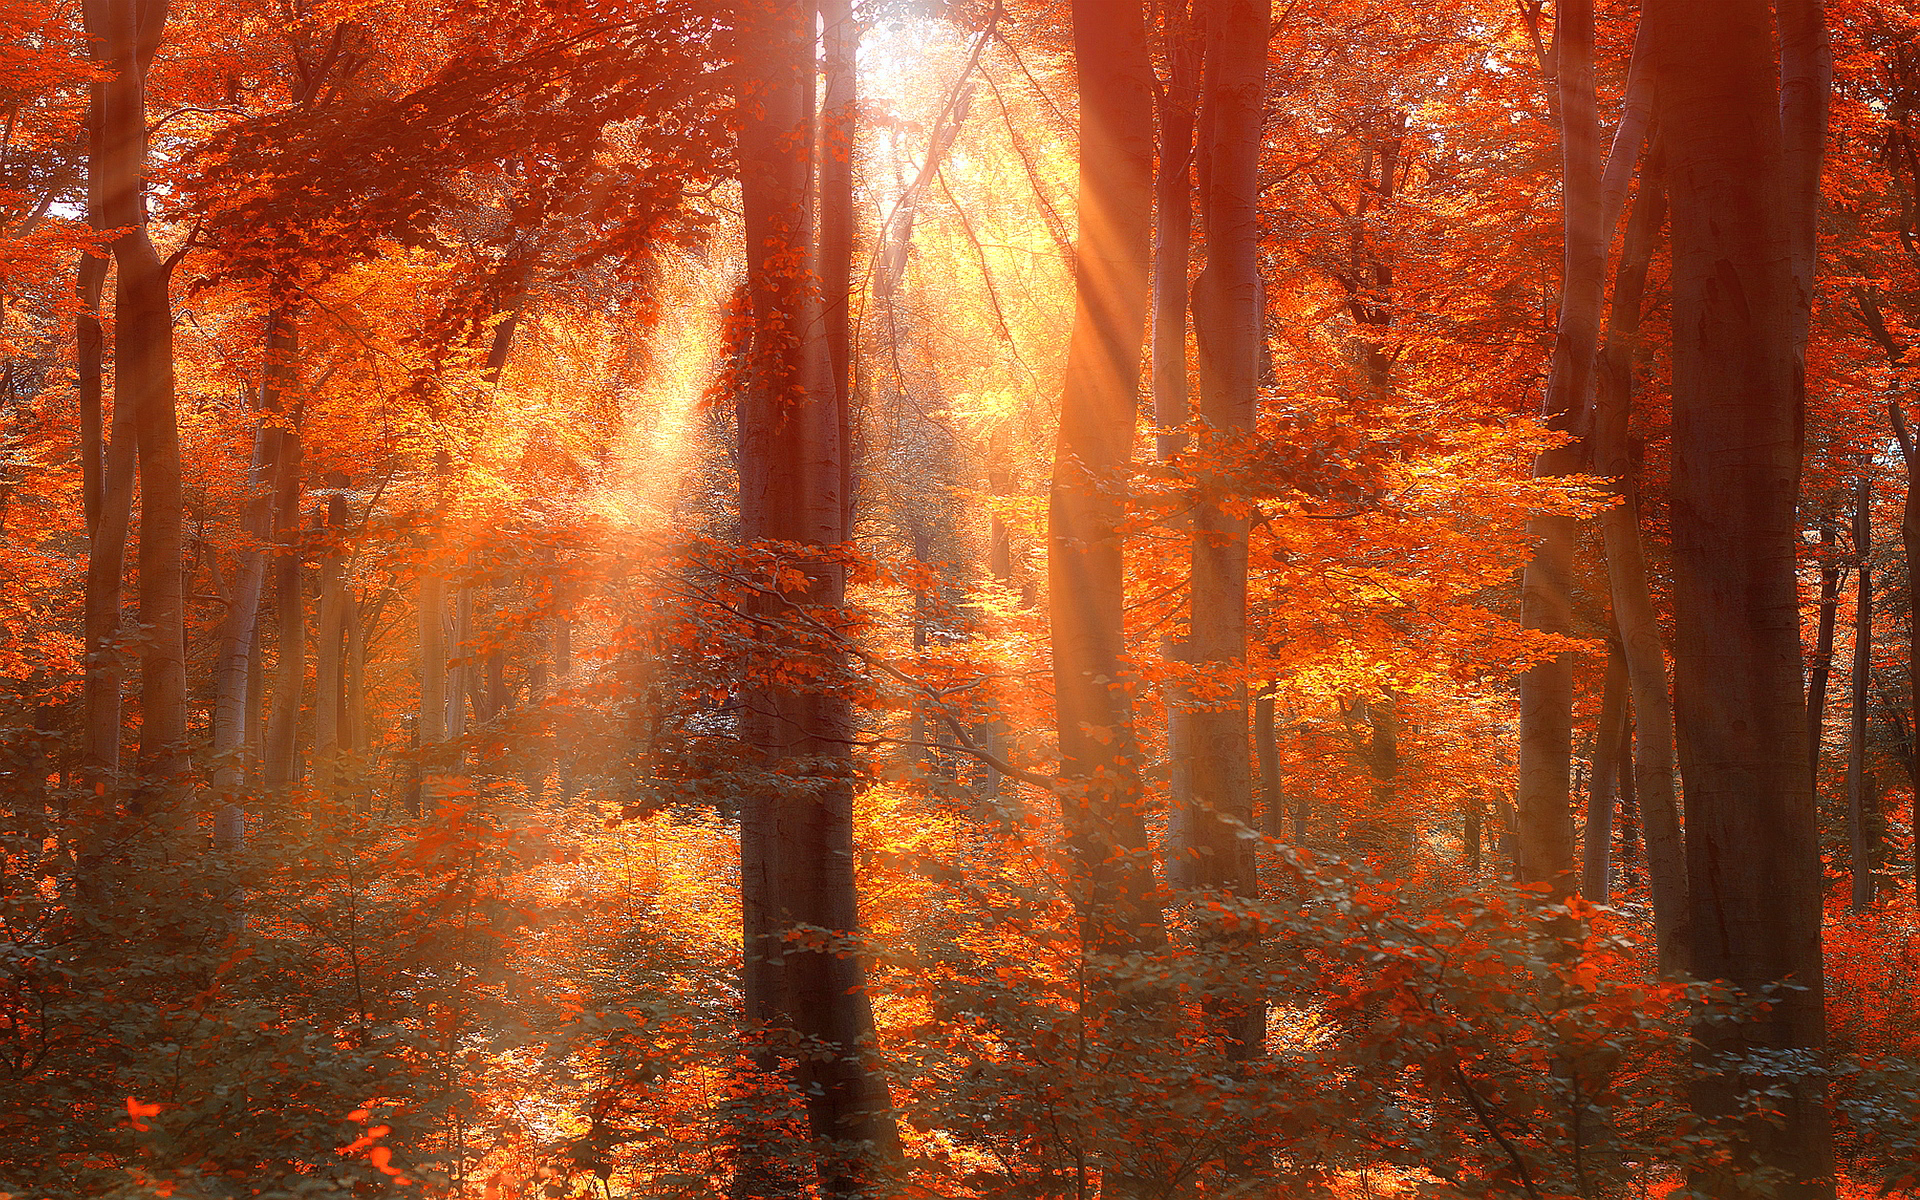 4k Fall Painting Wallpapers Autumn Forest Background Download Free Pixelstalk Net